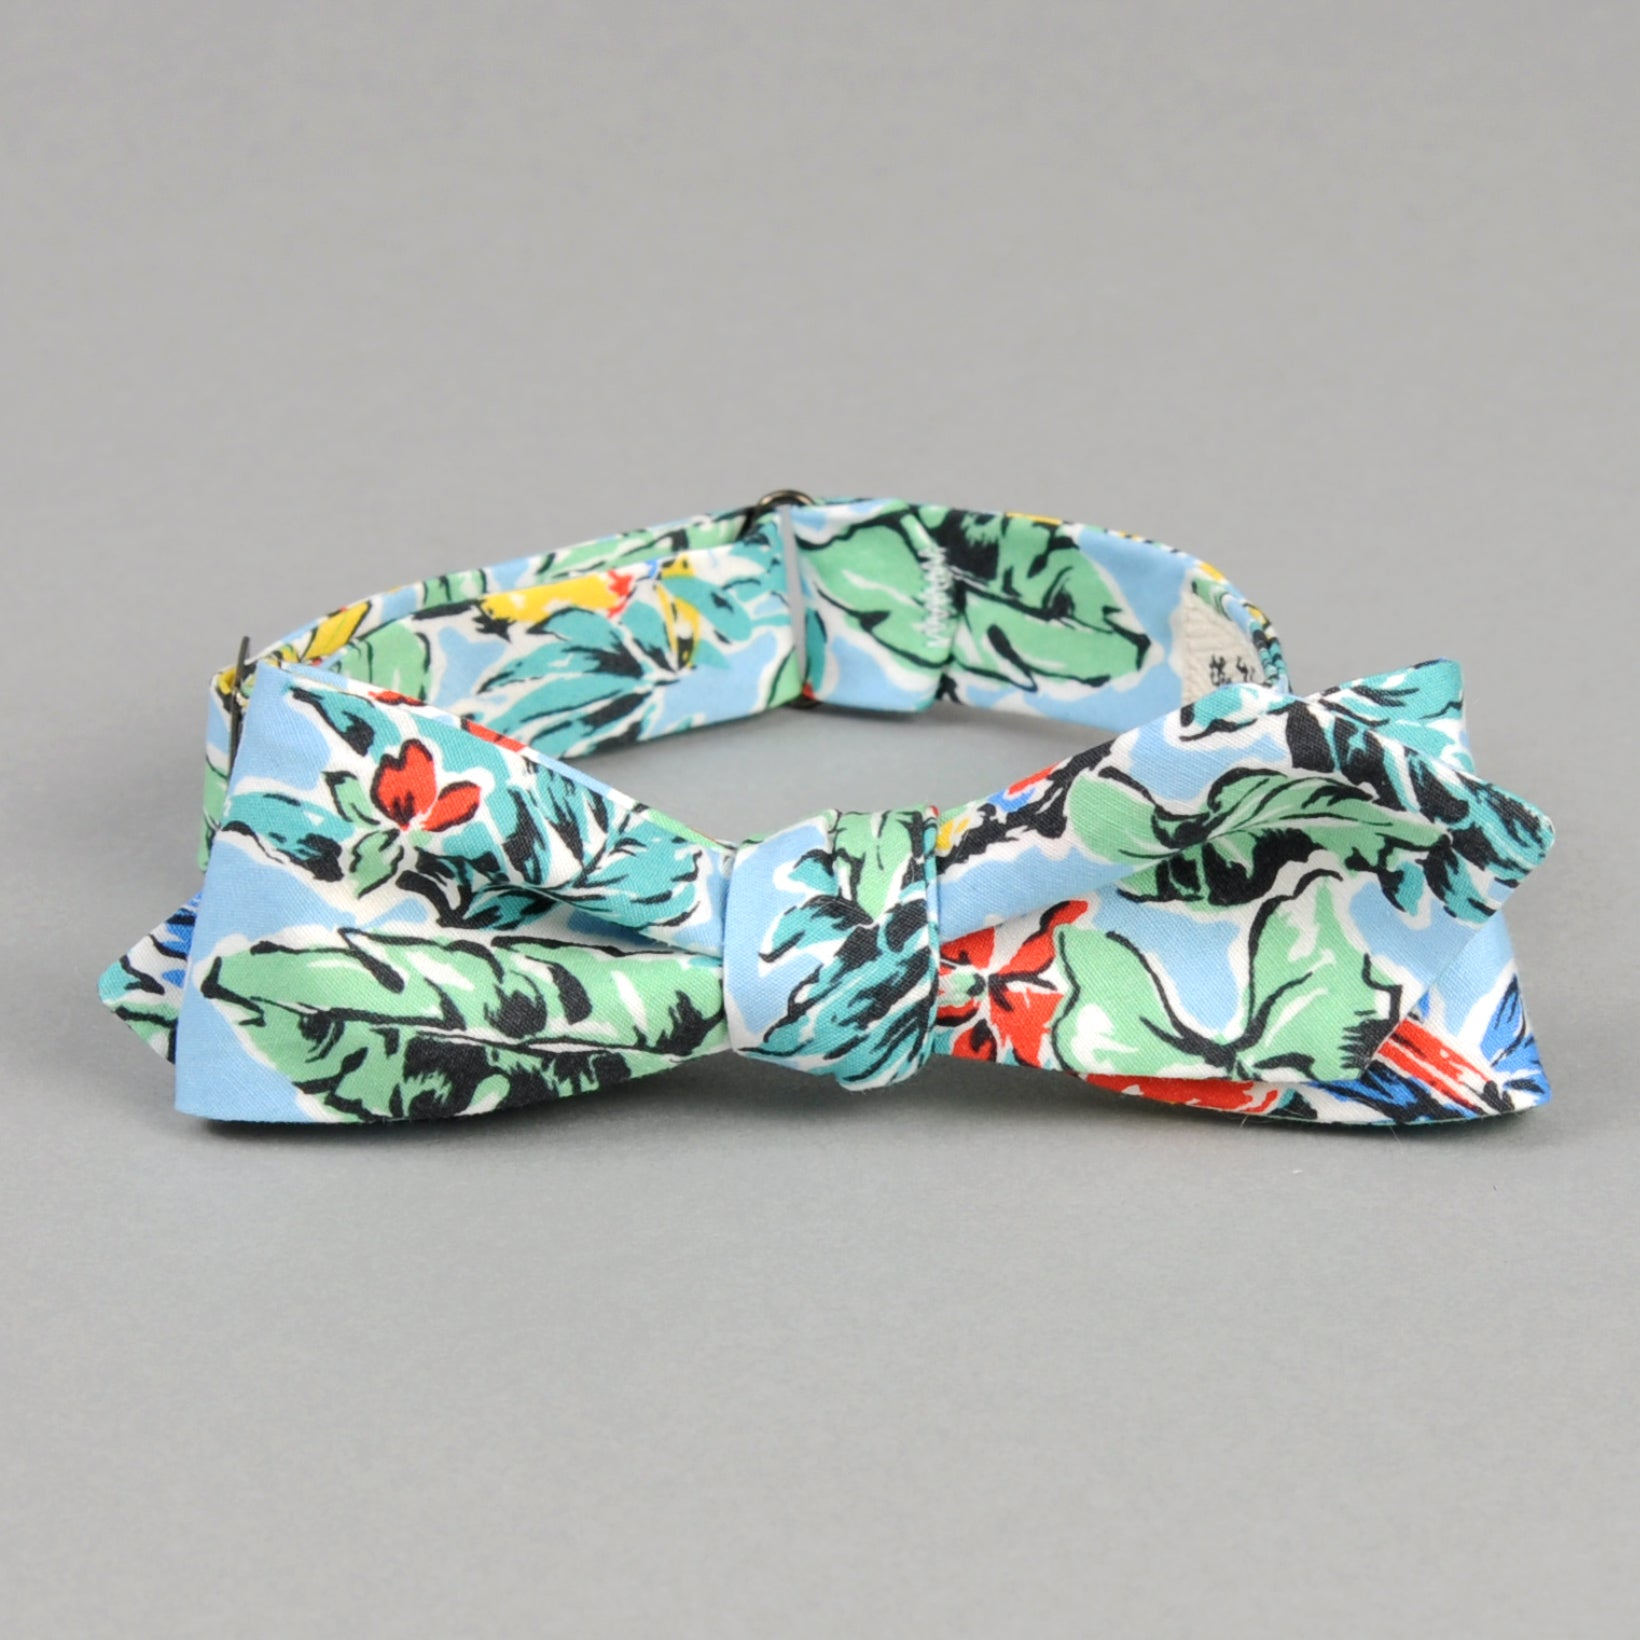 The Hill-Side - Toucans & Bananas Print Bow Tie, Blue - BT1-456 - image 1